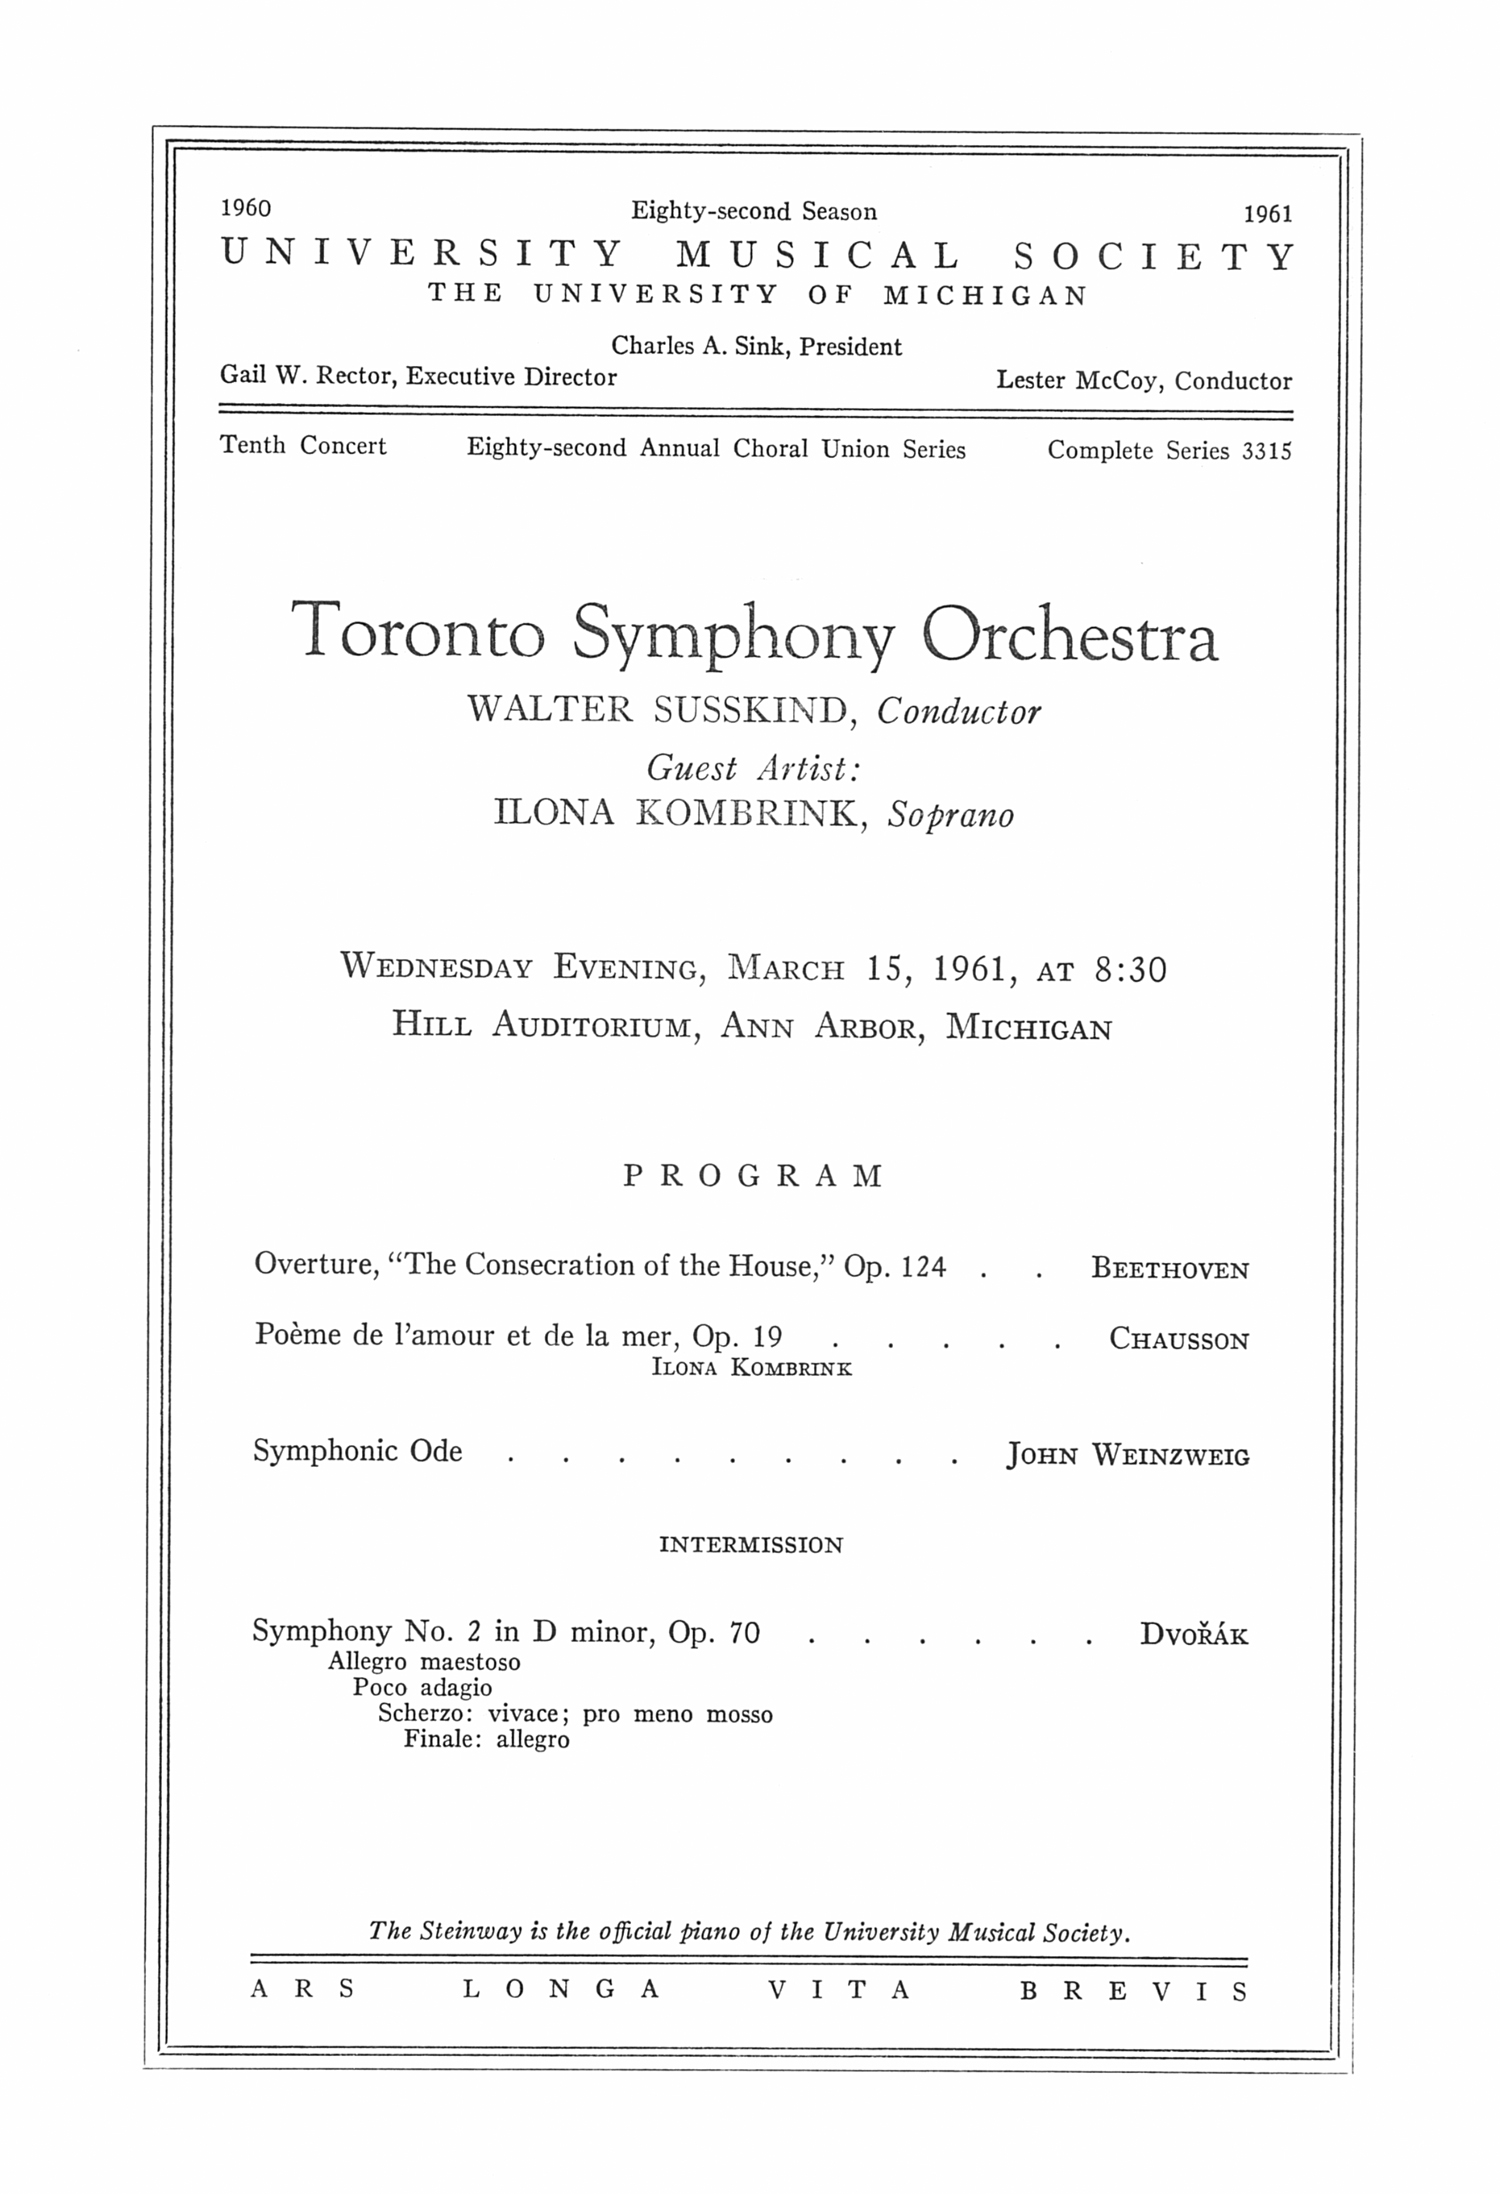 UMS Concert Program, March 15: Toronto Symphony Orchestra --  image